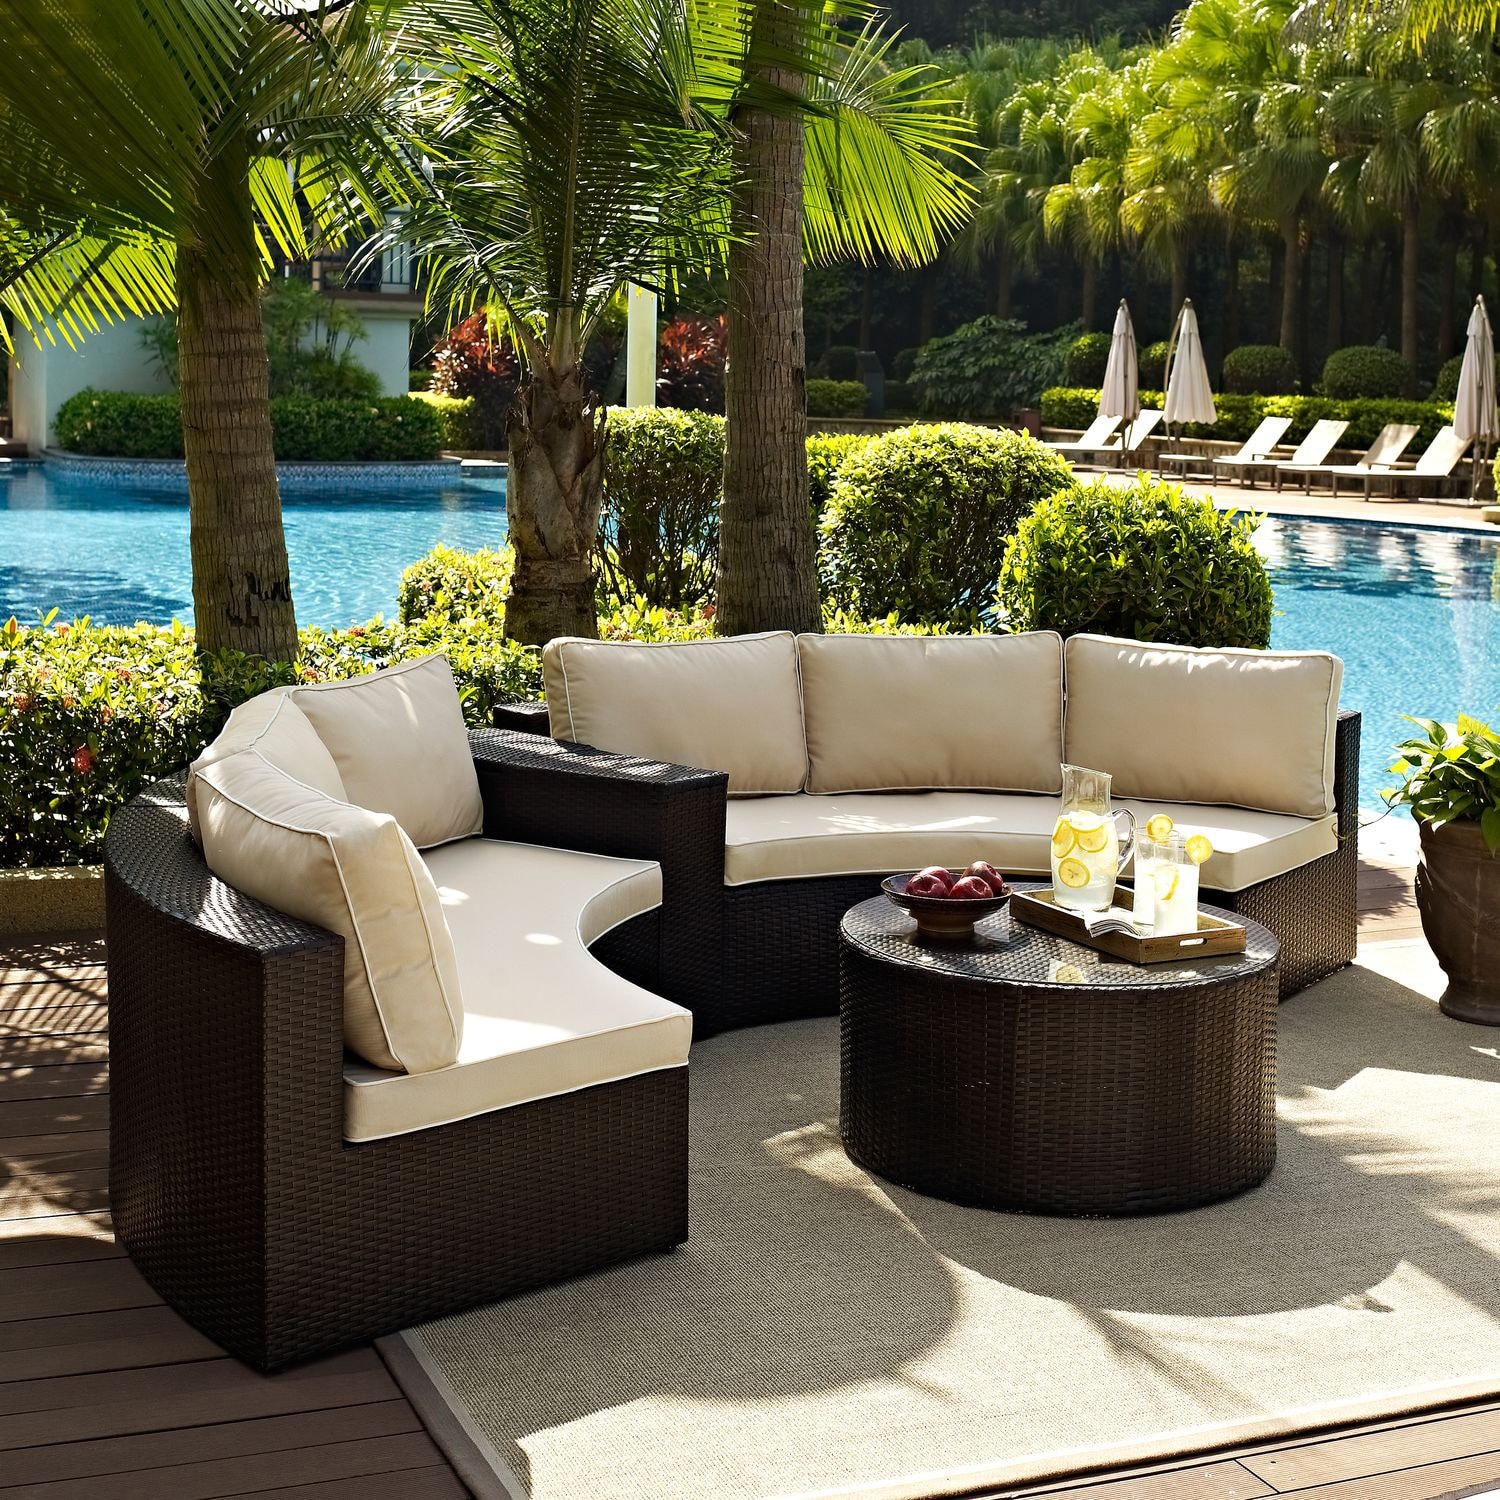 biltmore 3 piece outdoor sectional and coffee table set brown rh valuecityfurniture com Outdoor Furniture Outdoor Patio Furniture